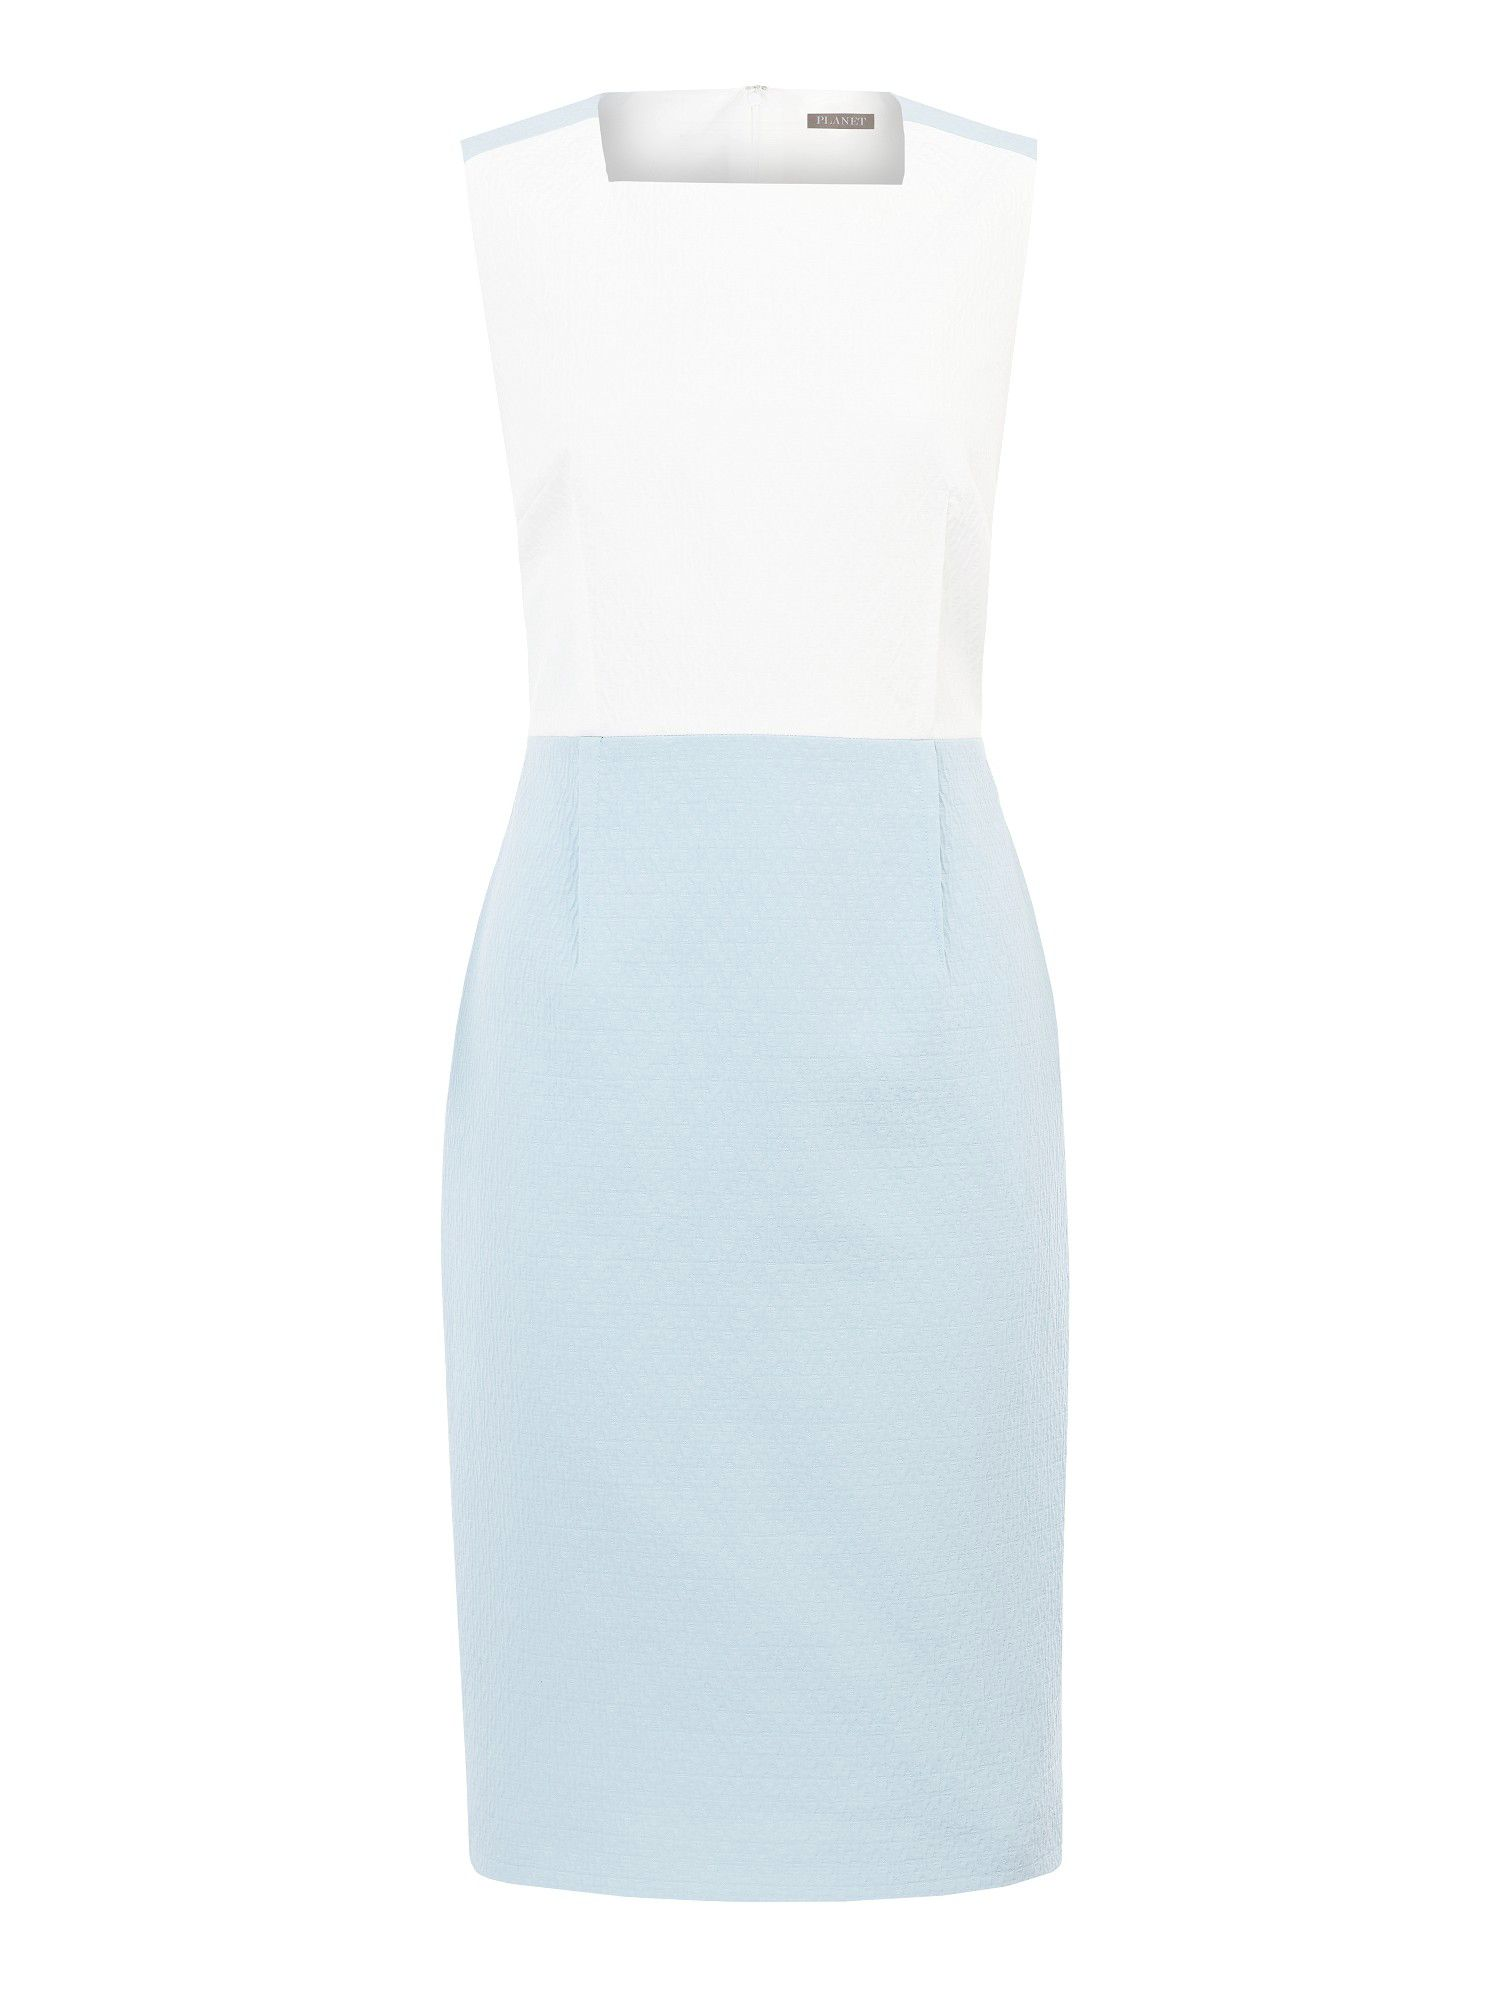 Ice blue & ivory blocking dress